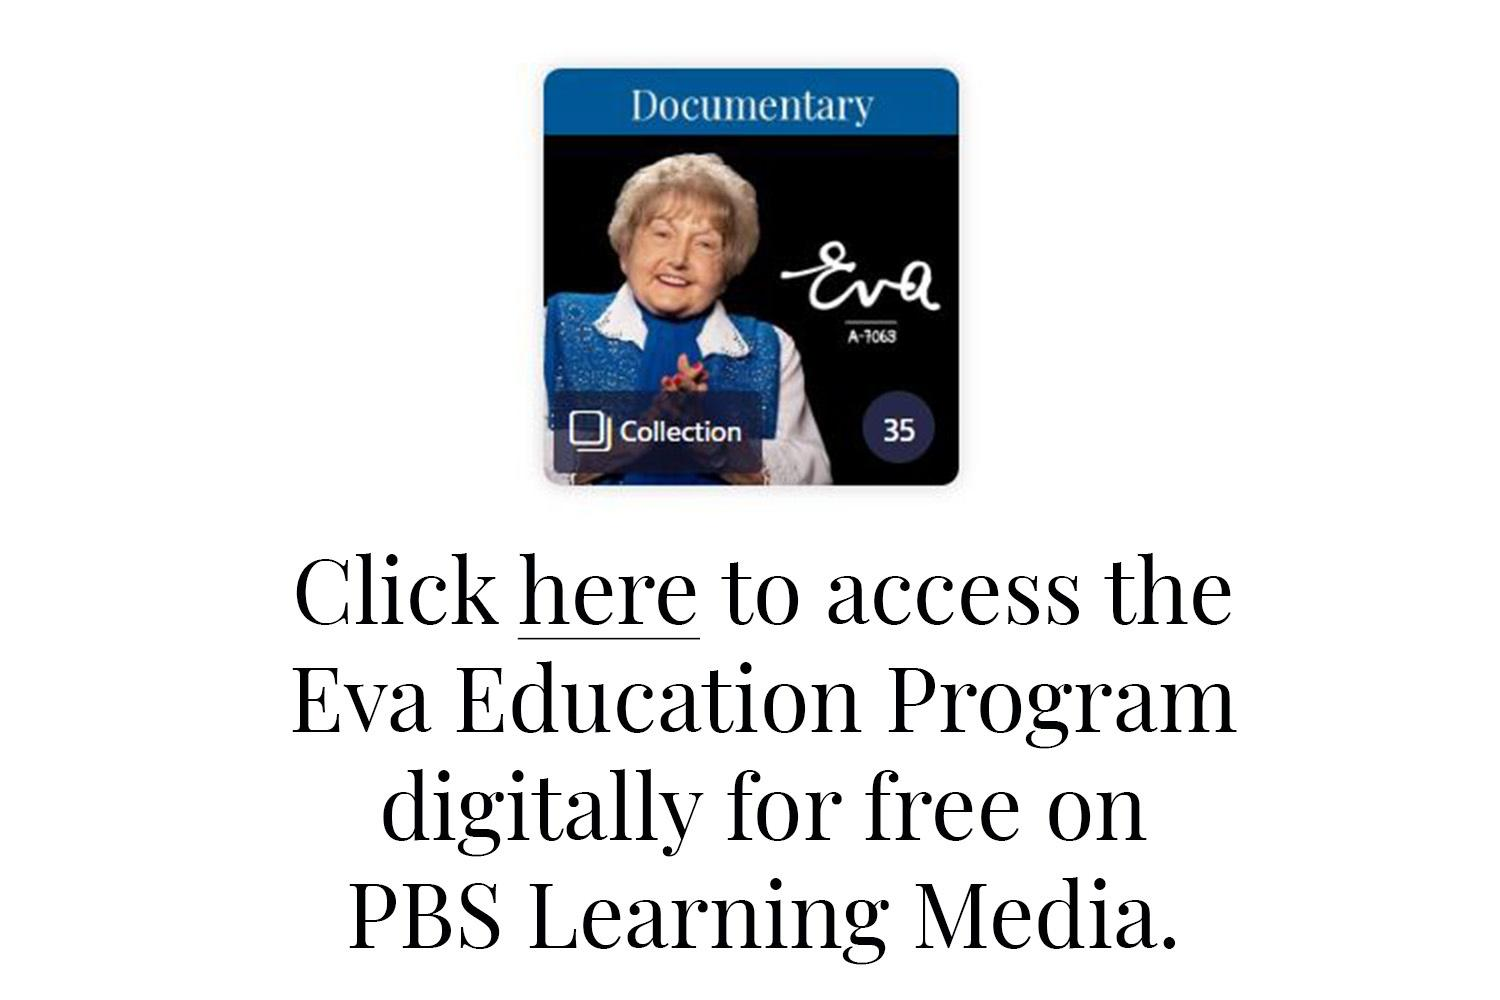 Click here to access the Eva Education Program for free digitally on PBS Learning Media.